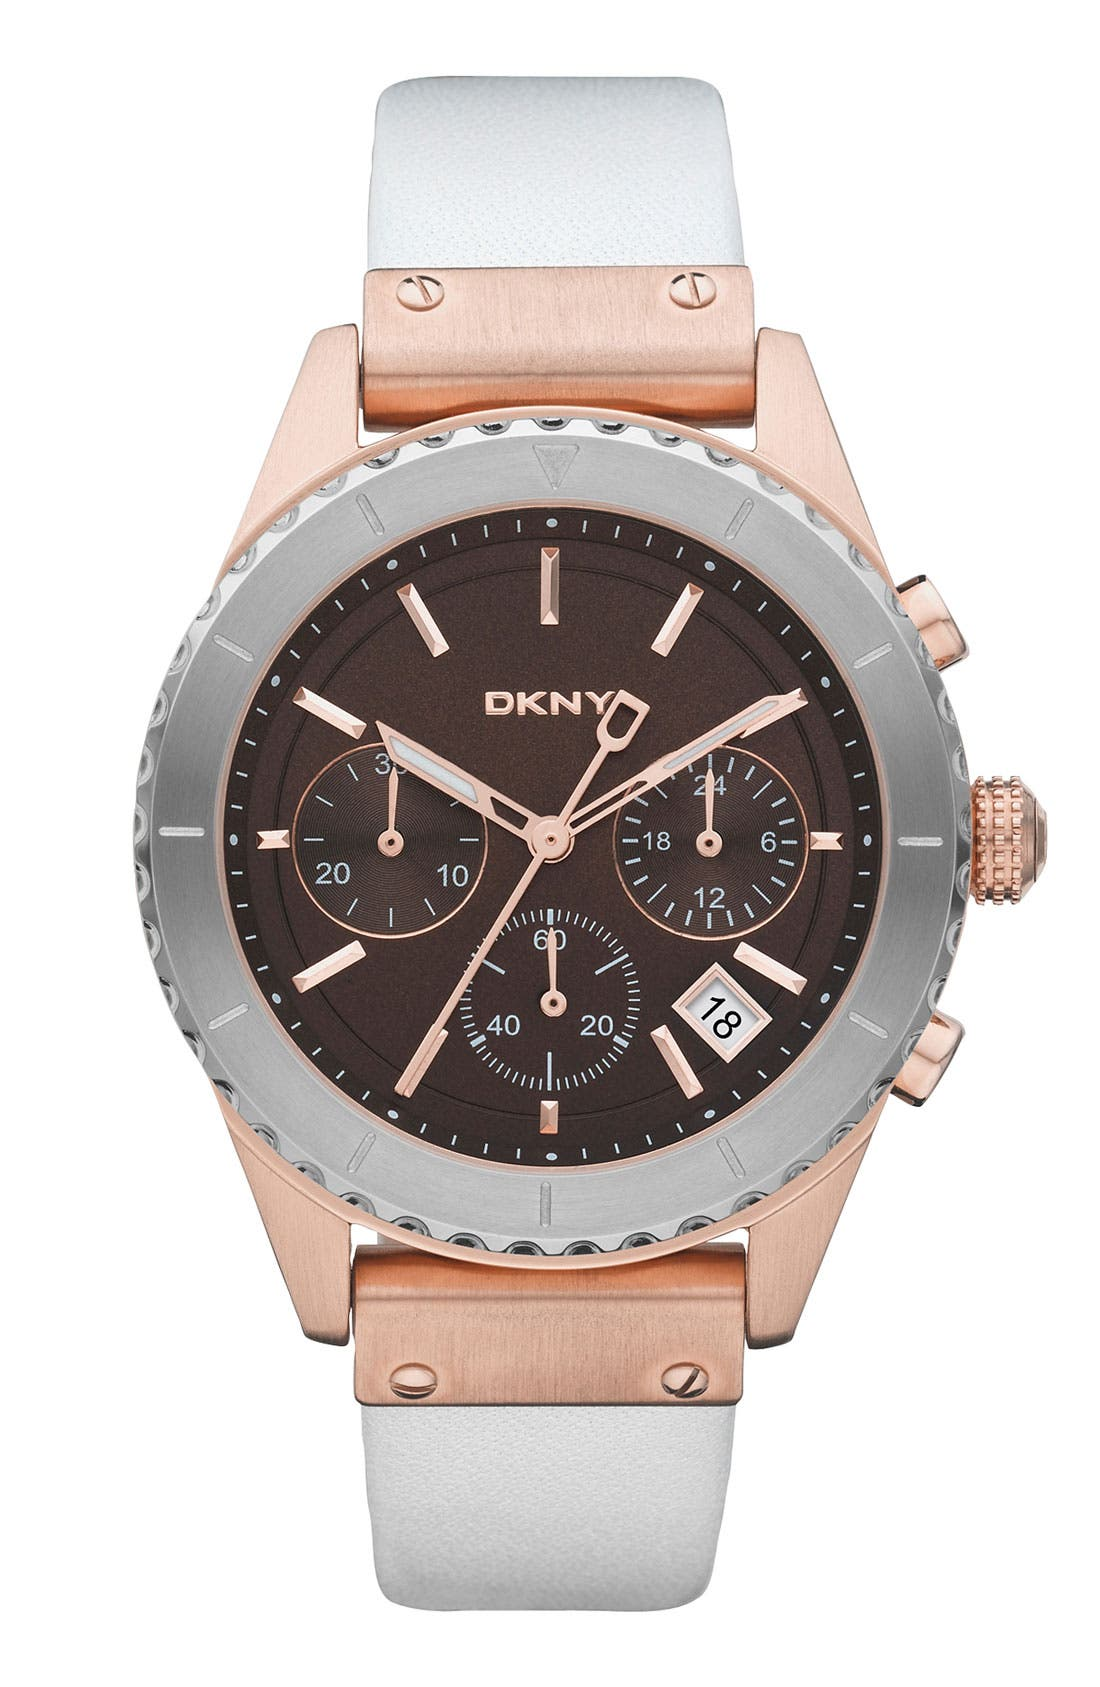 Main Image - DKNY 'Street Smart' Chronograph Leather Strap Watch